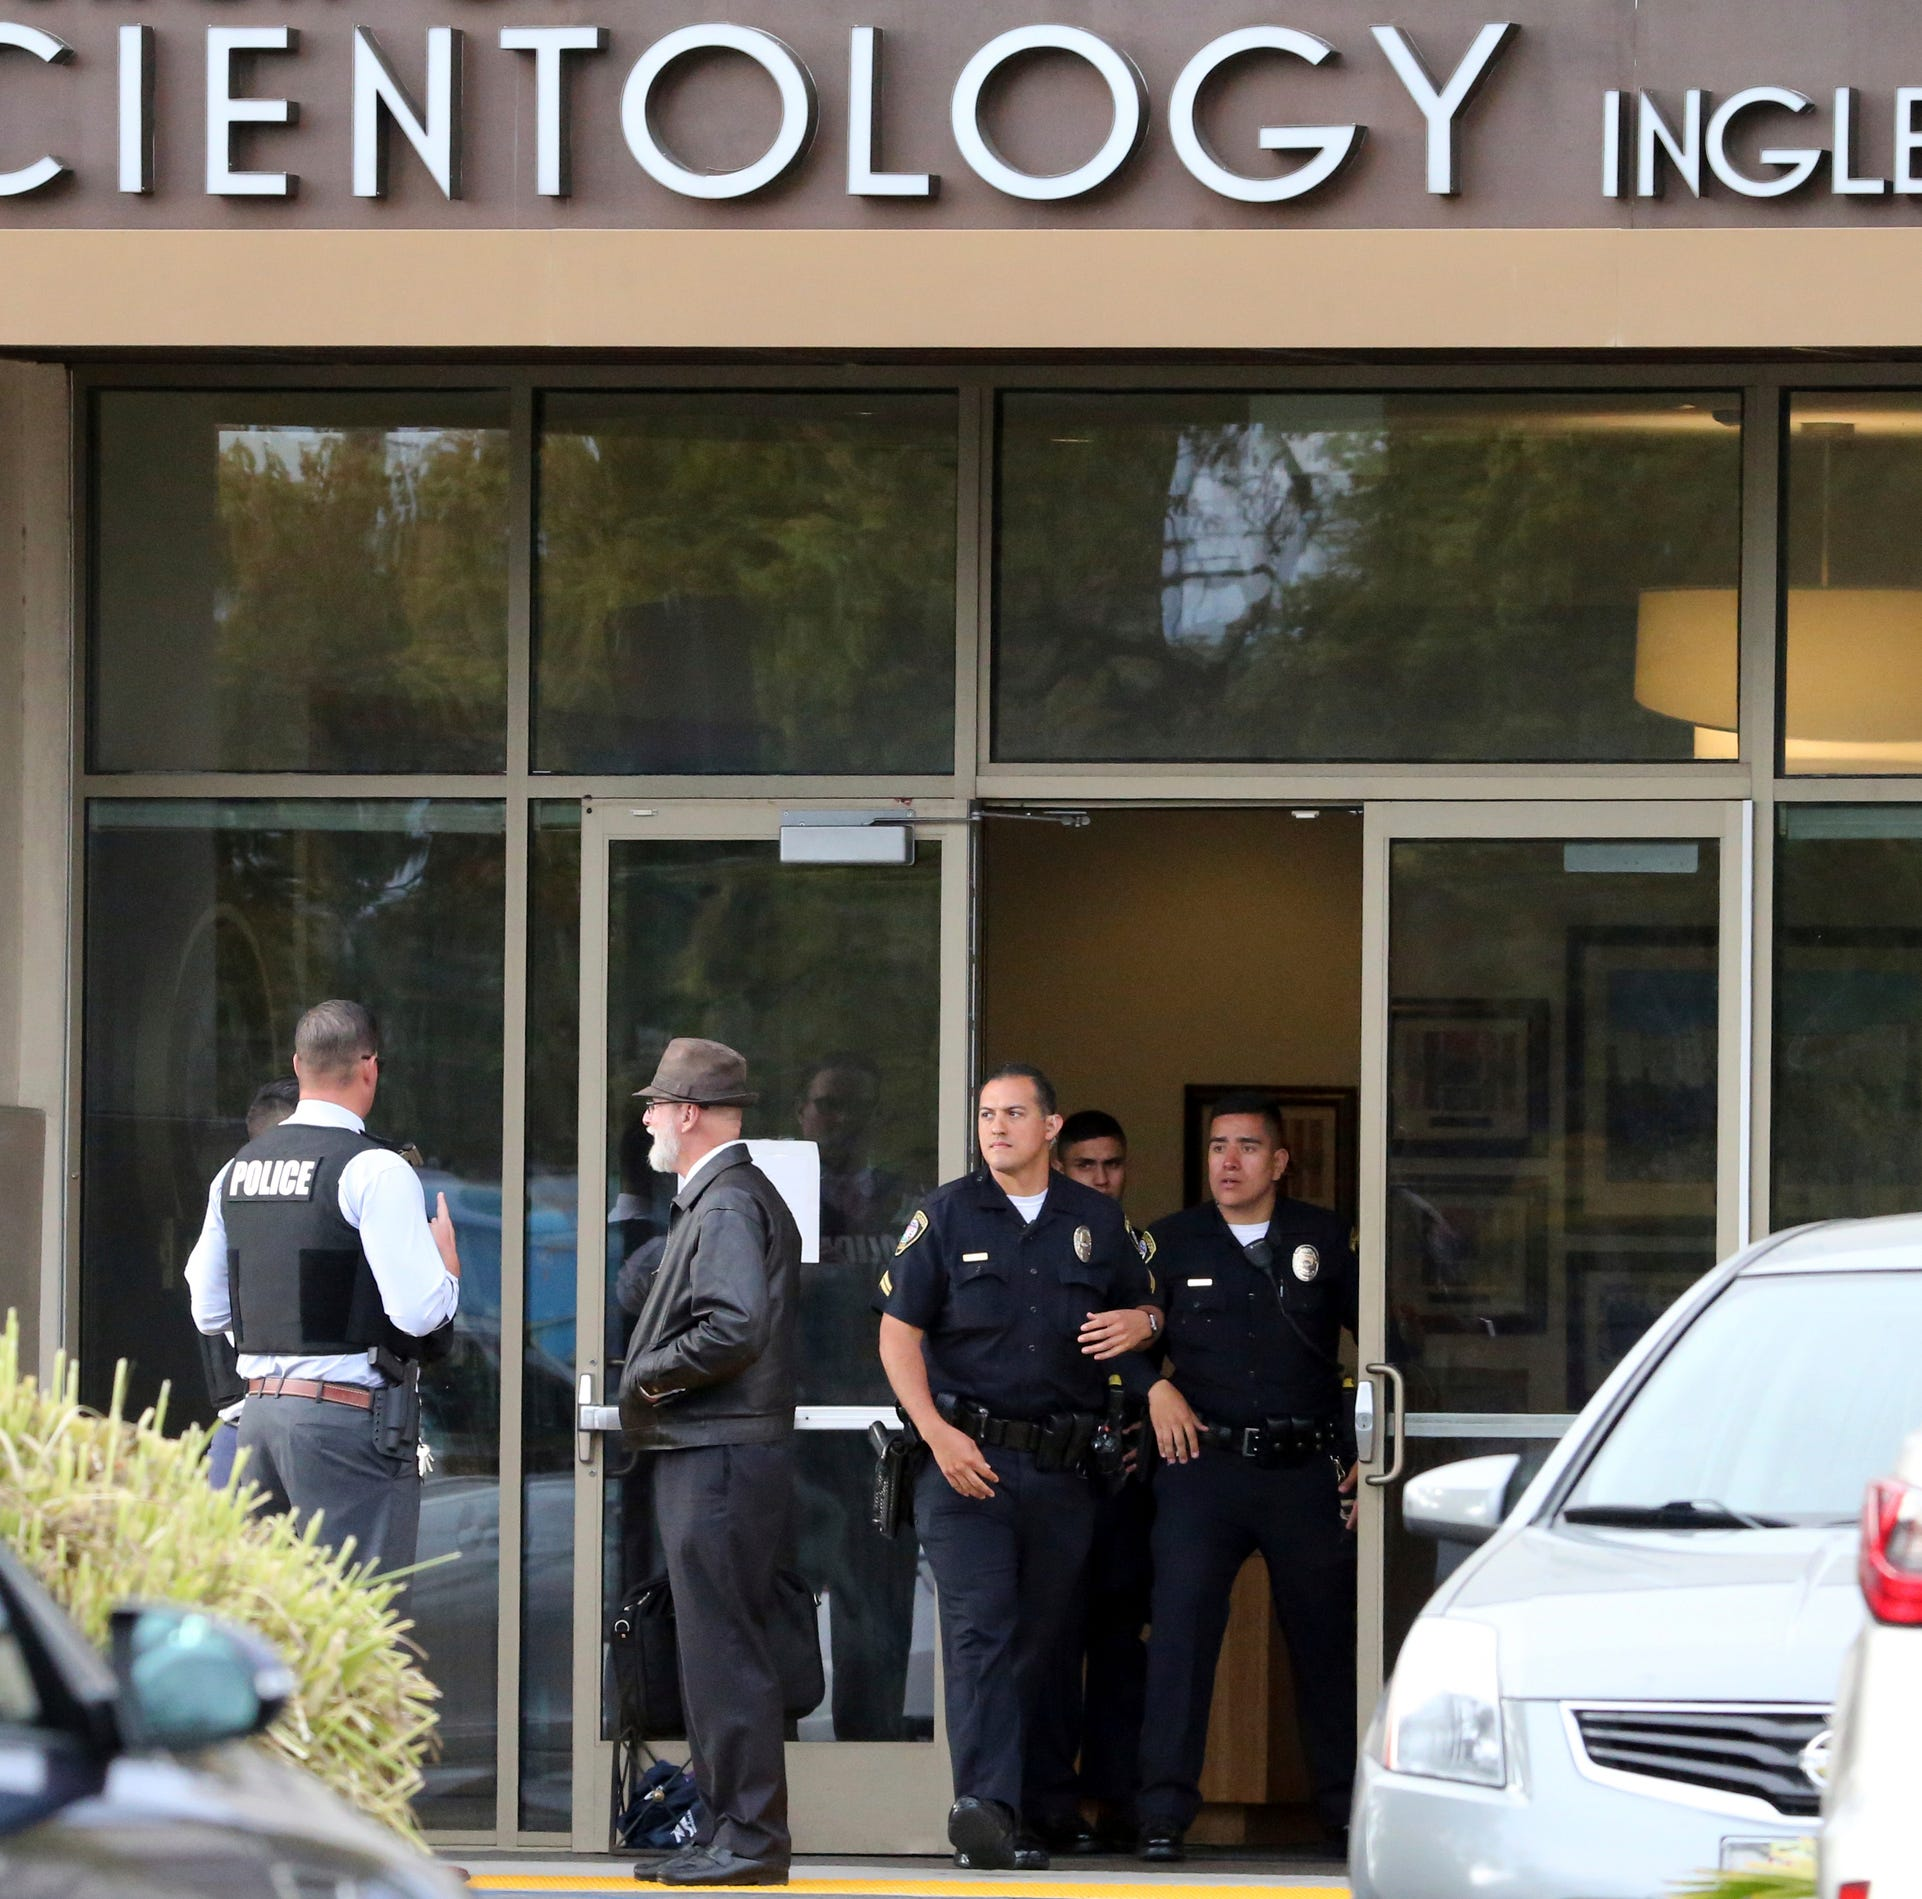 Man with sword fatally shot at Scientology church, two California officers injured